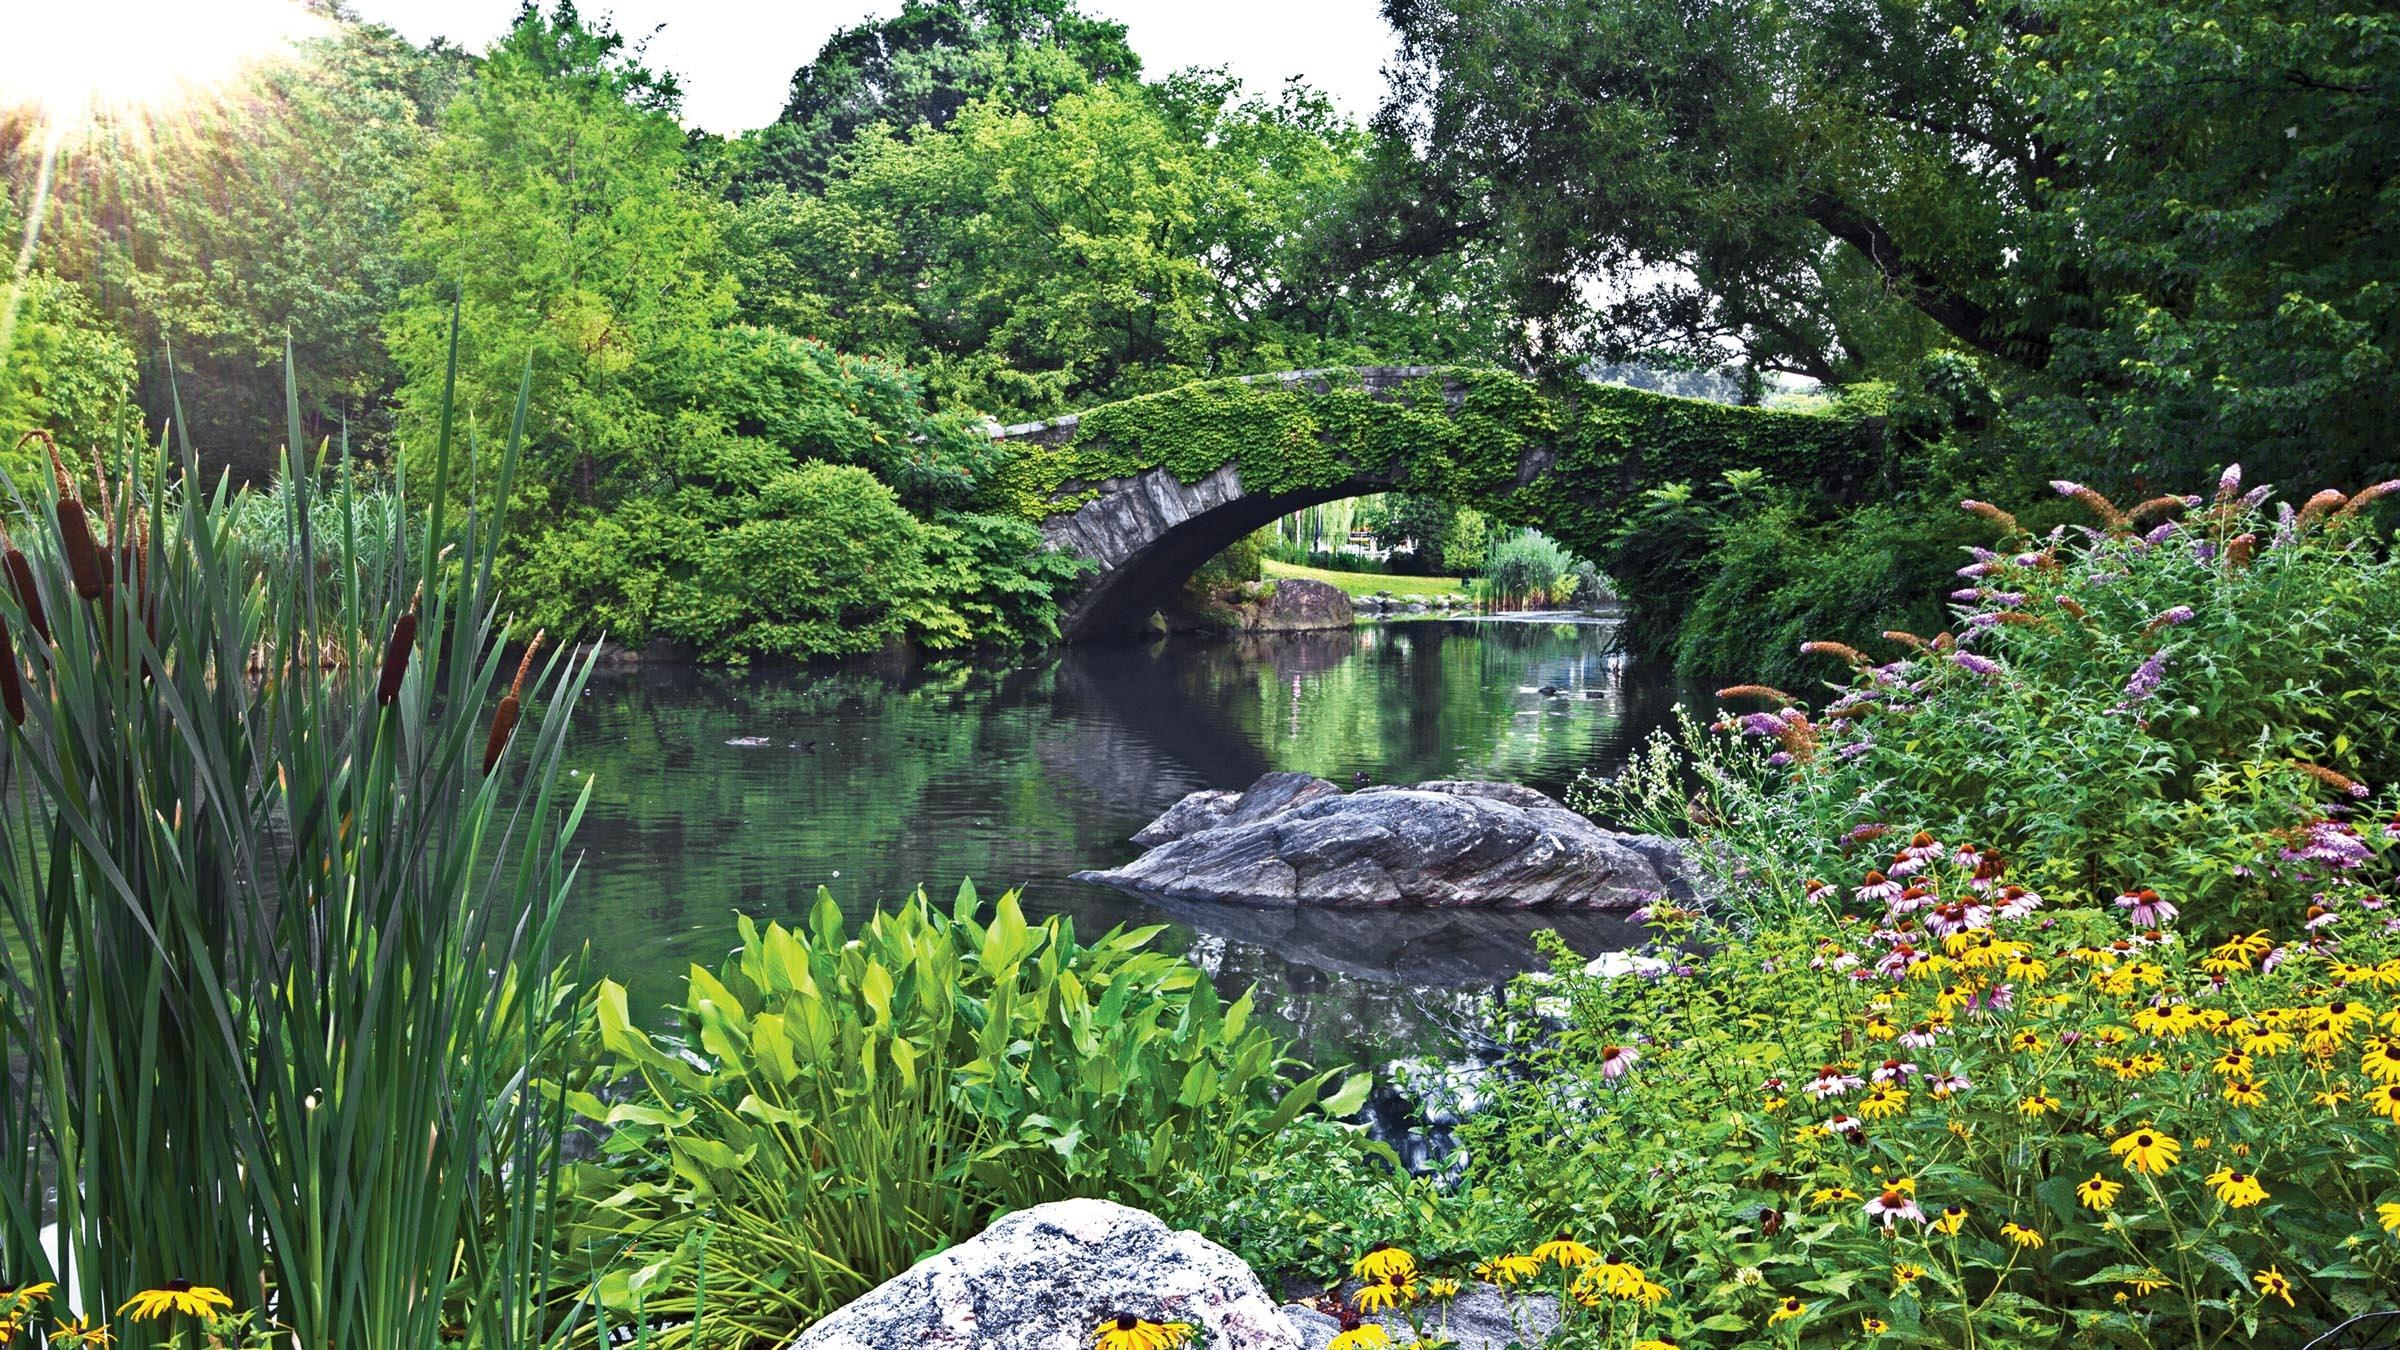 Video Frederick Law Olmsted - Preview | Watch Frederick Law Olmsted Designing America Online ...